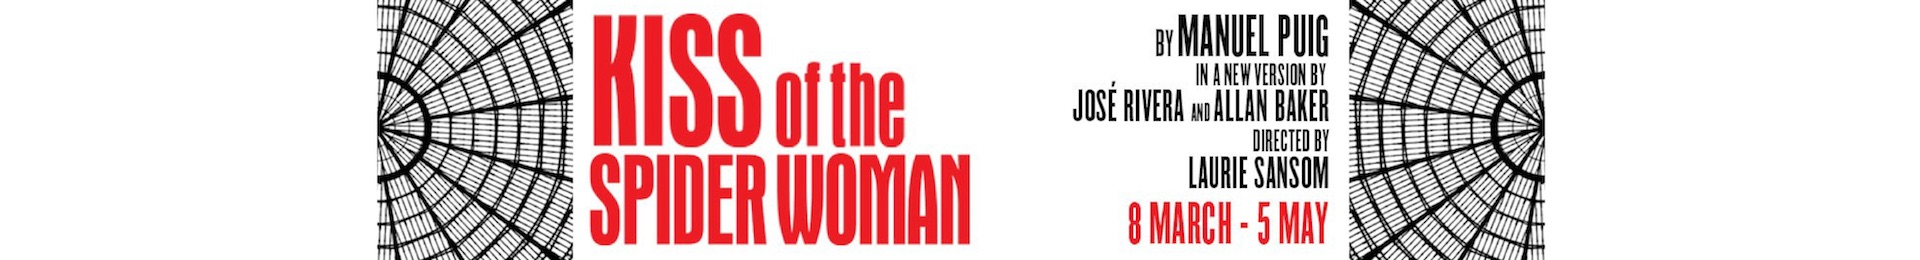 Kiss of the Spider Woman banner image